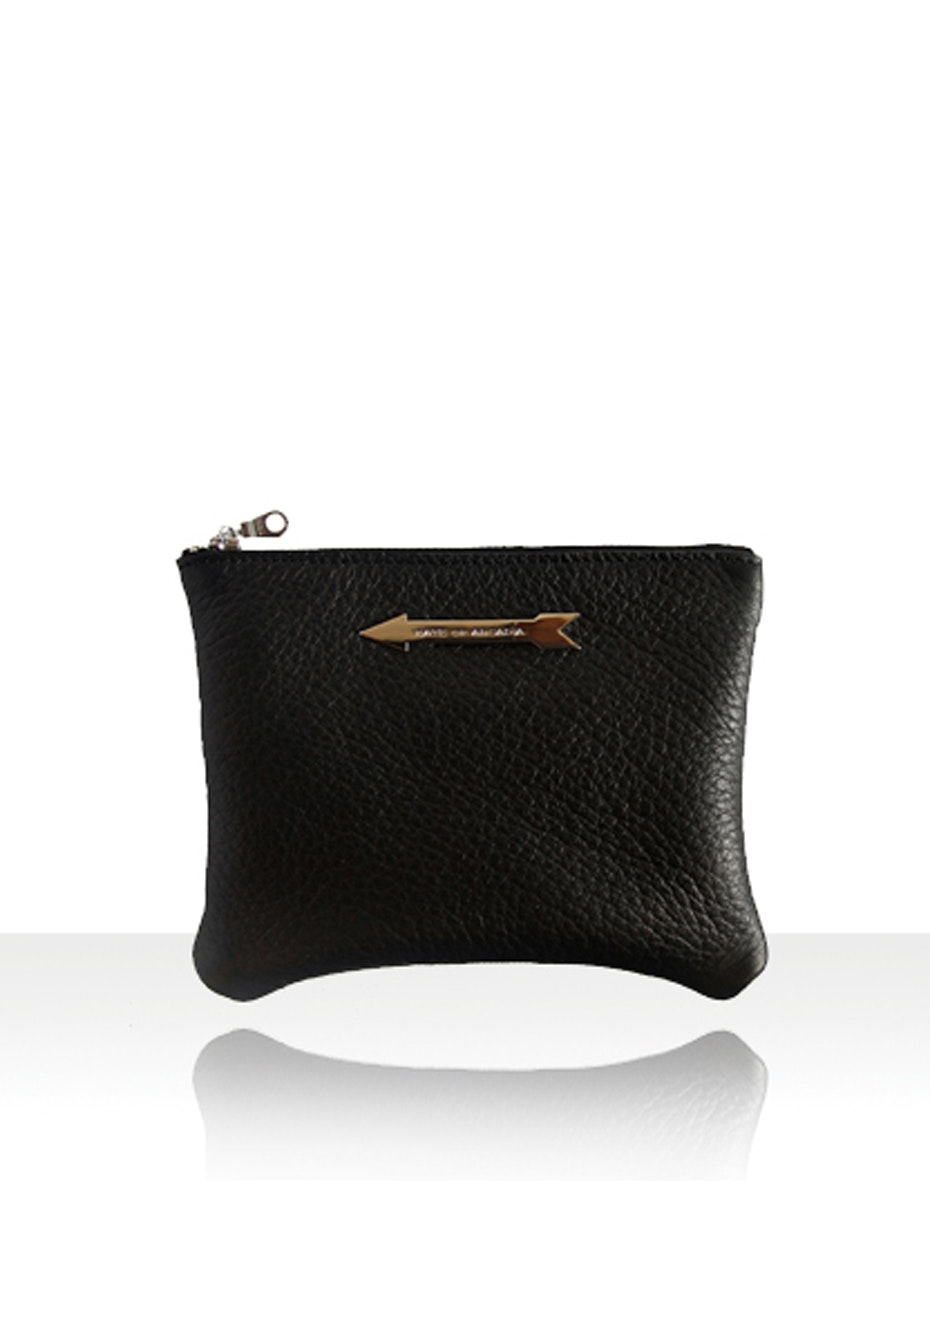 Kate Of Arcadia - Arrow Purse Small - Deer Leather